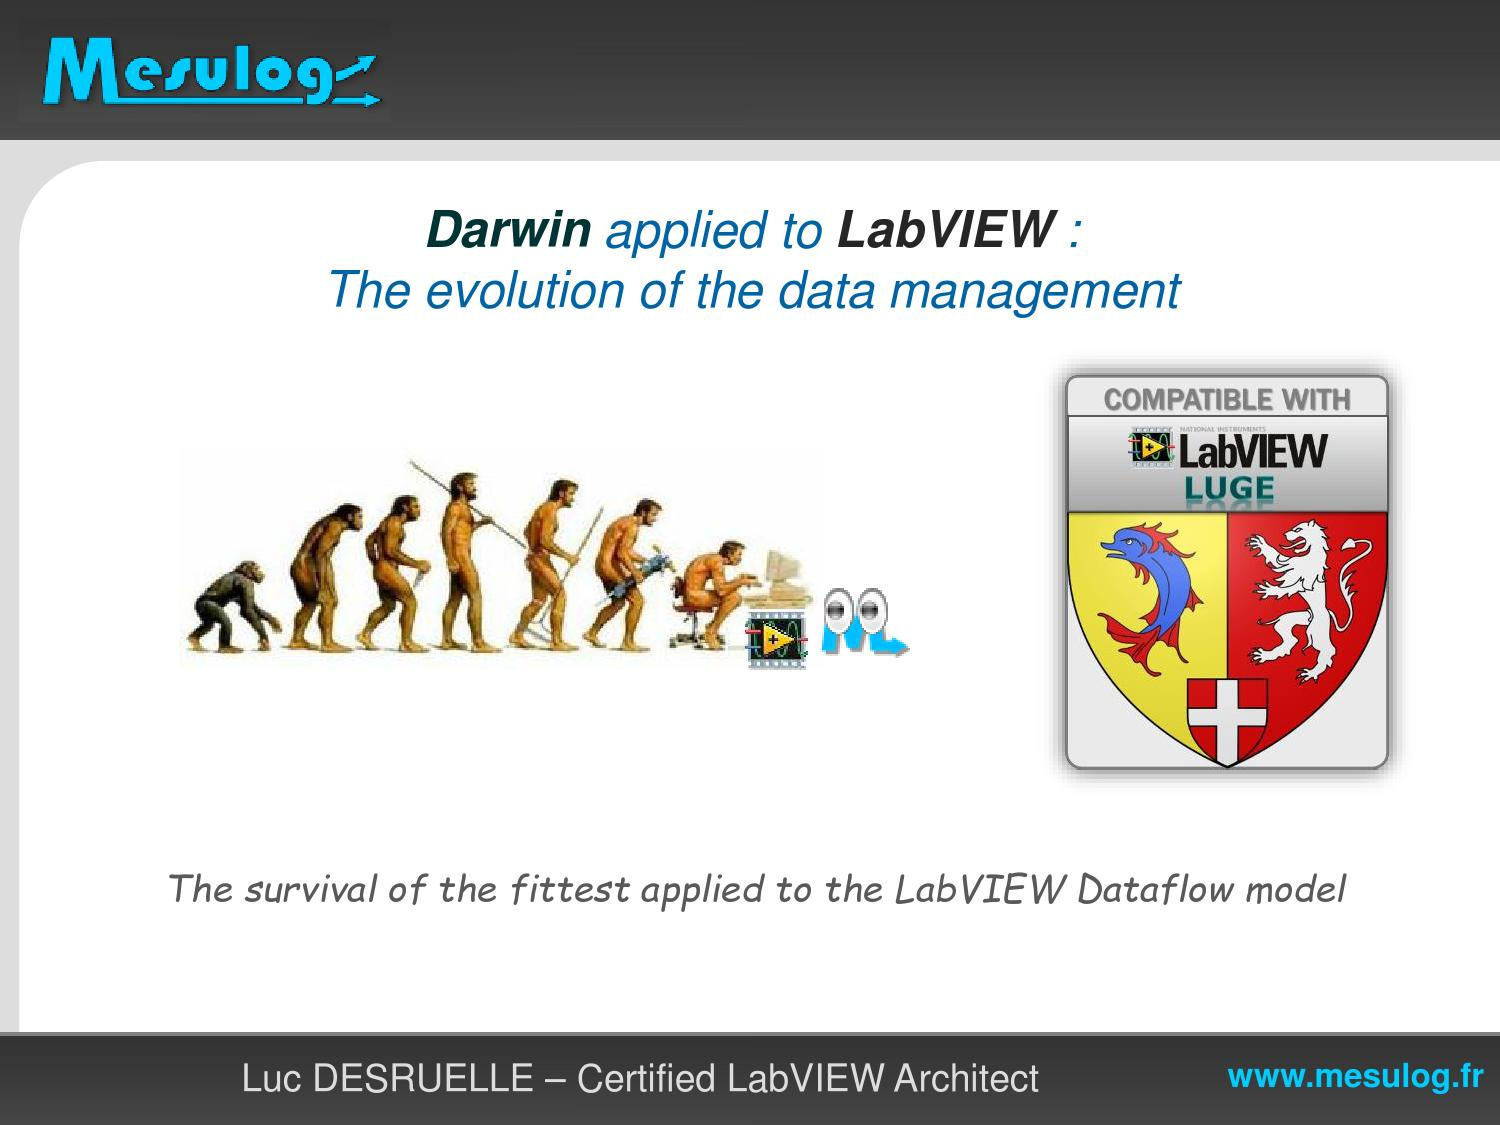 darwin applied to labview  the evolution of the data management by luc desruelle